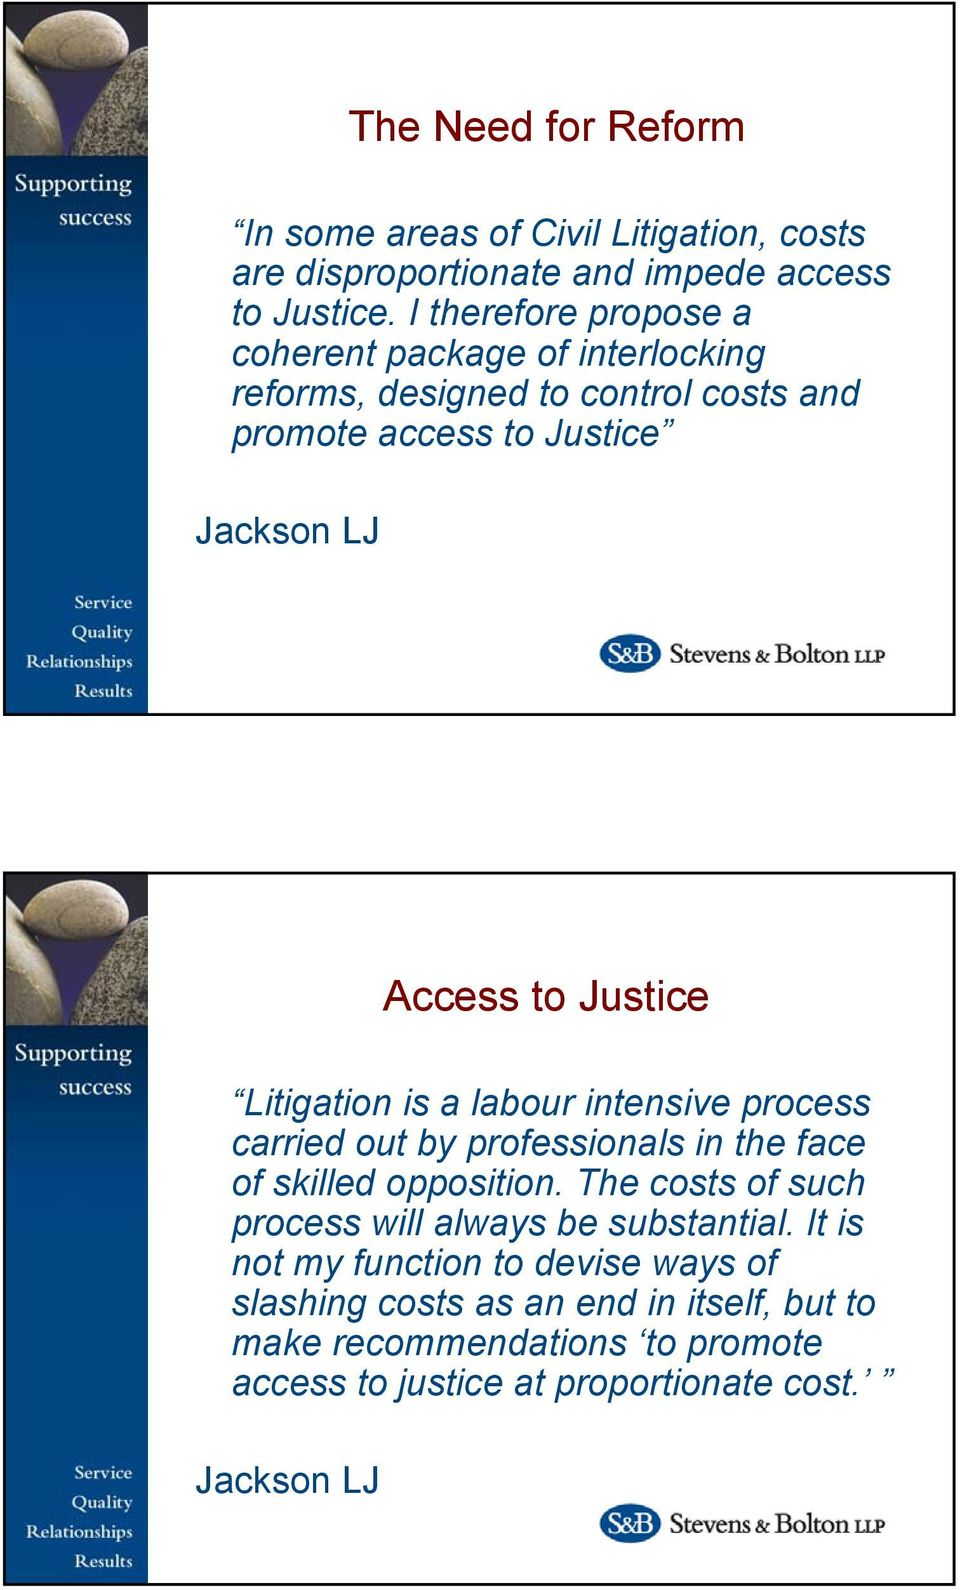 Justice Litigation is a labour intensive process carried out by professionals in the face of skilled opposition.